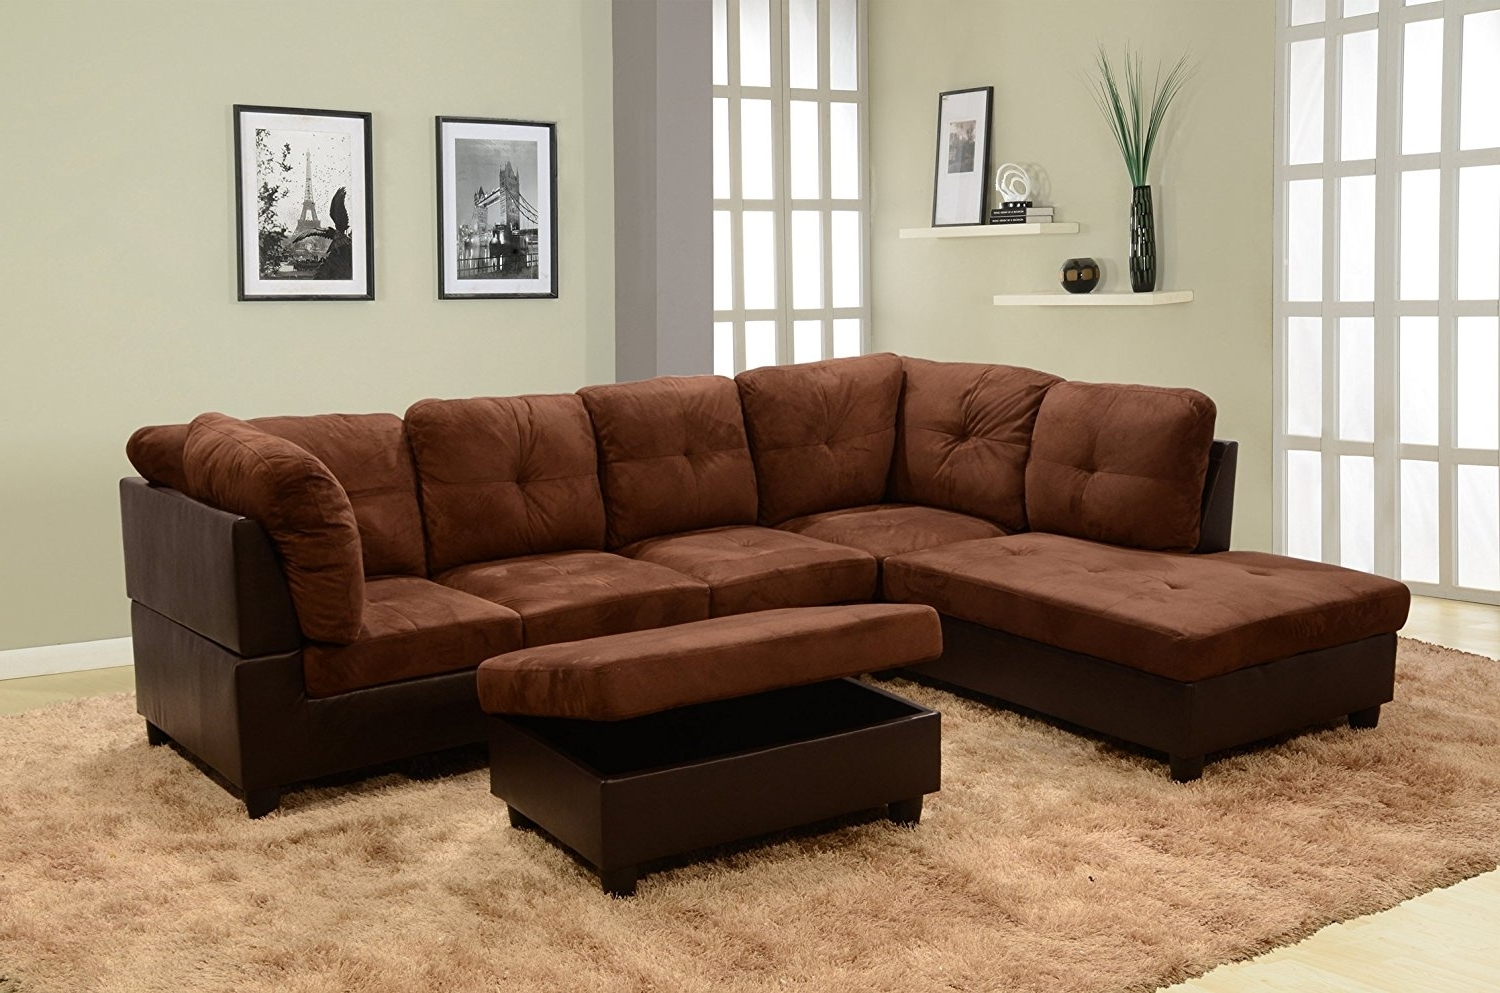 Best And Newest Elliot Fabric Microfiber 2 Piece Sectional Sofa Elliot Fabric Pertaining To Sectional Sofas With 2 Chaises (View 4 of 20)